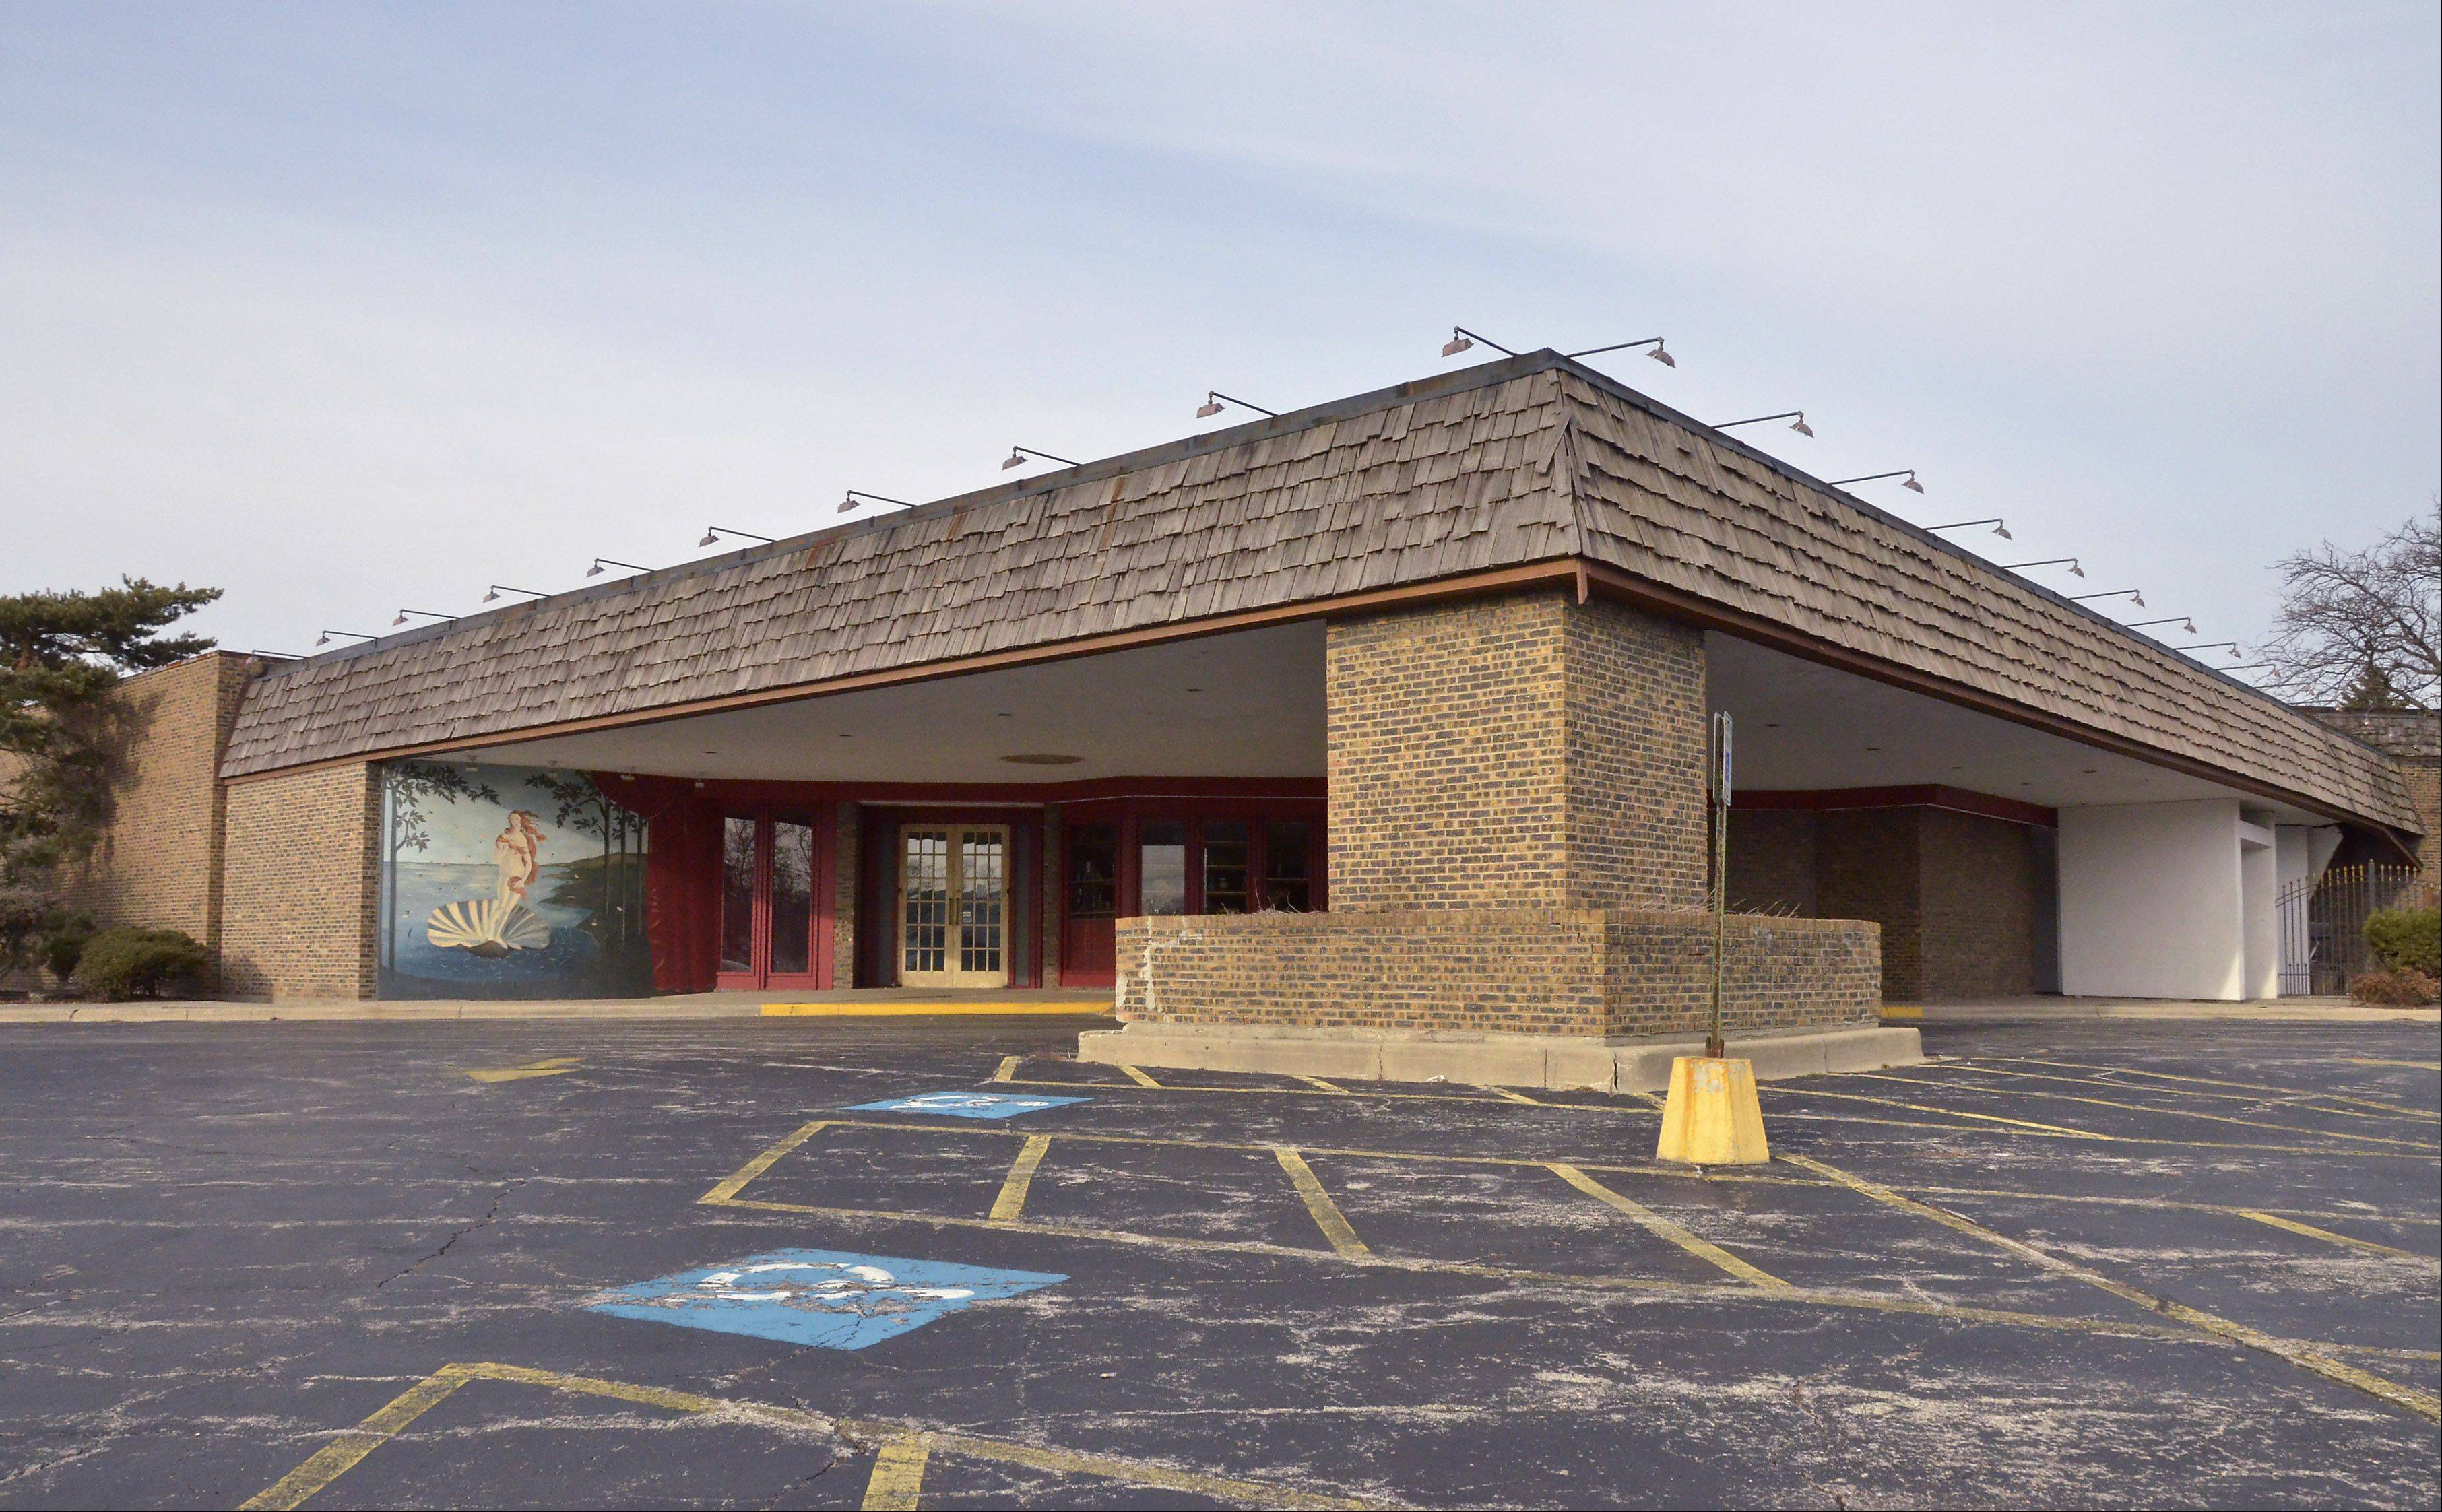 A Northfield pediatrician�s dream of building a community center in the former Grazie Ristorante & Banquet building in Des Plaines was rejected Monday.